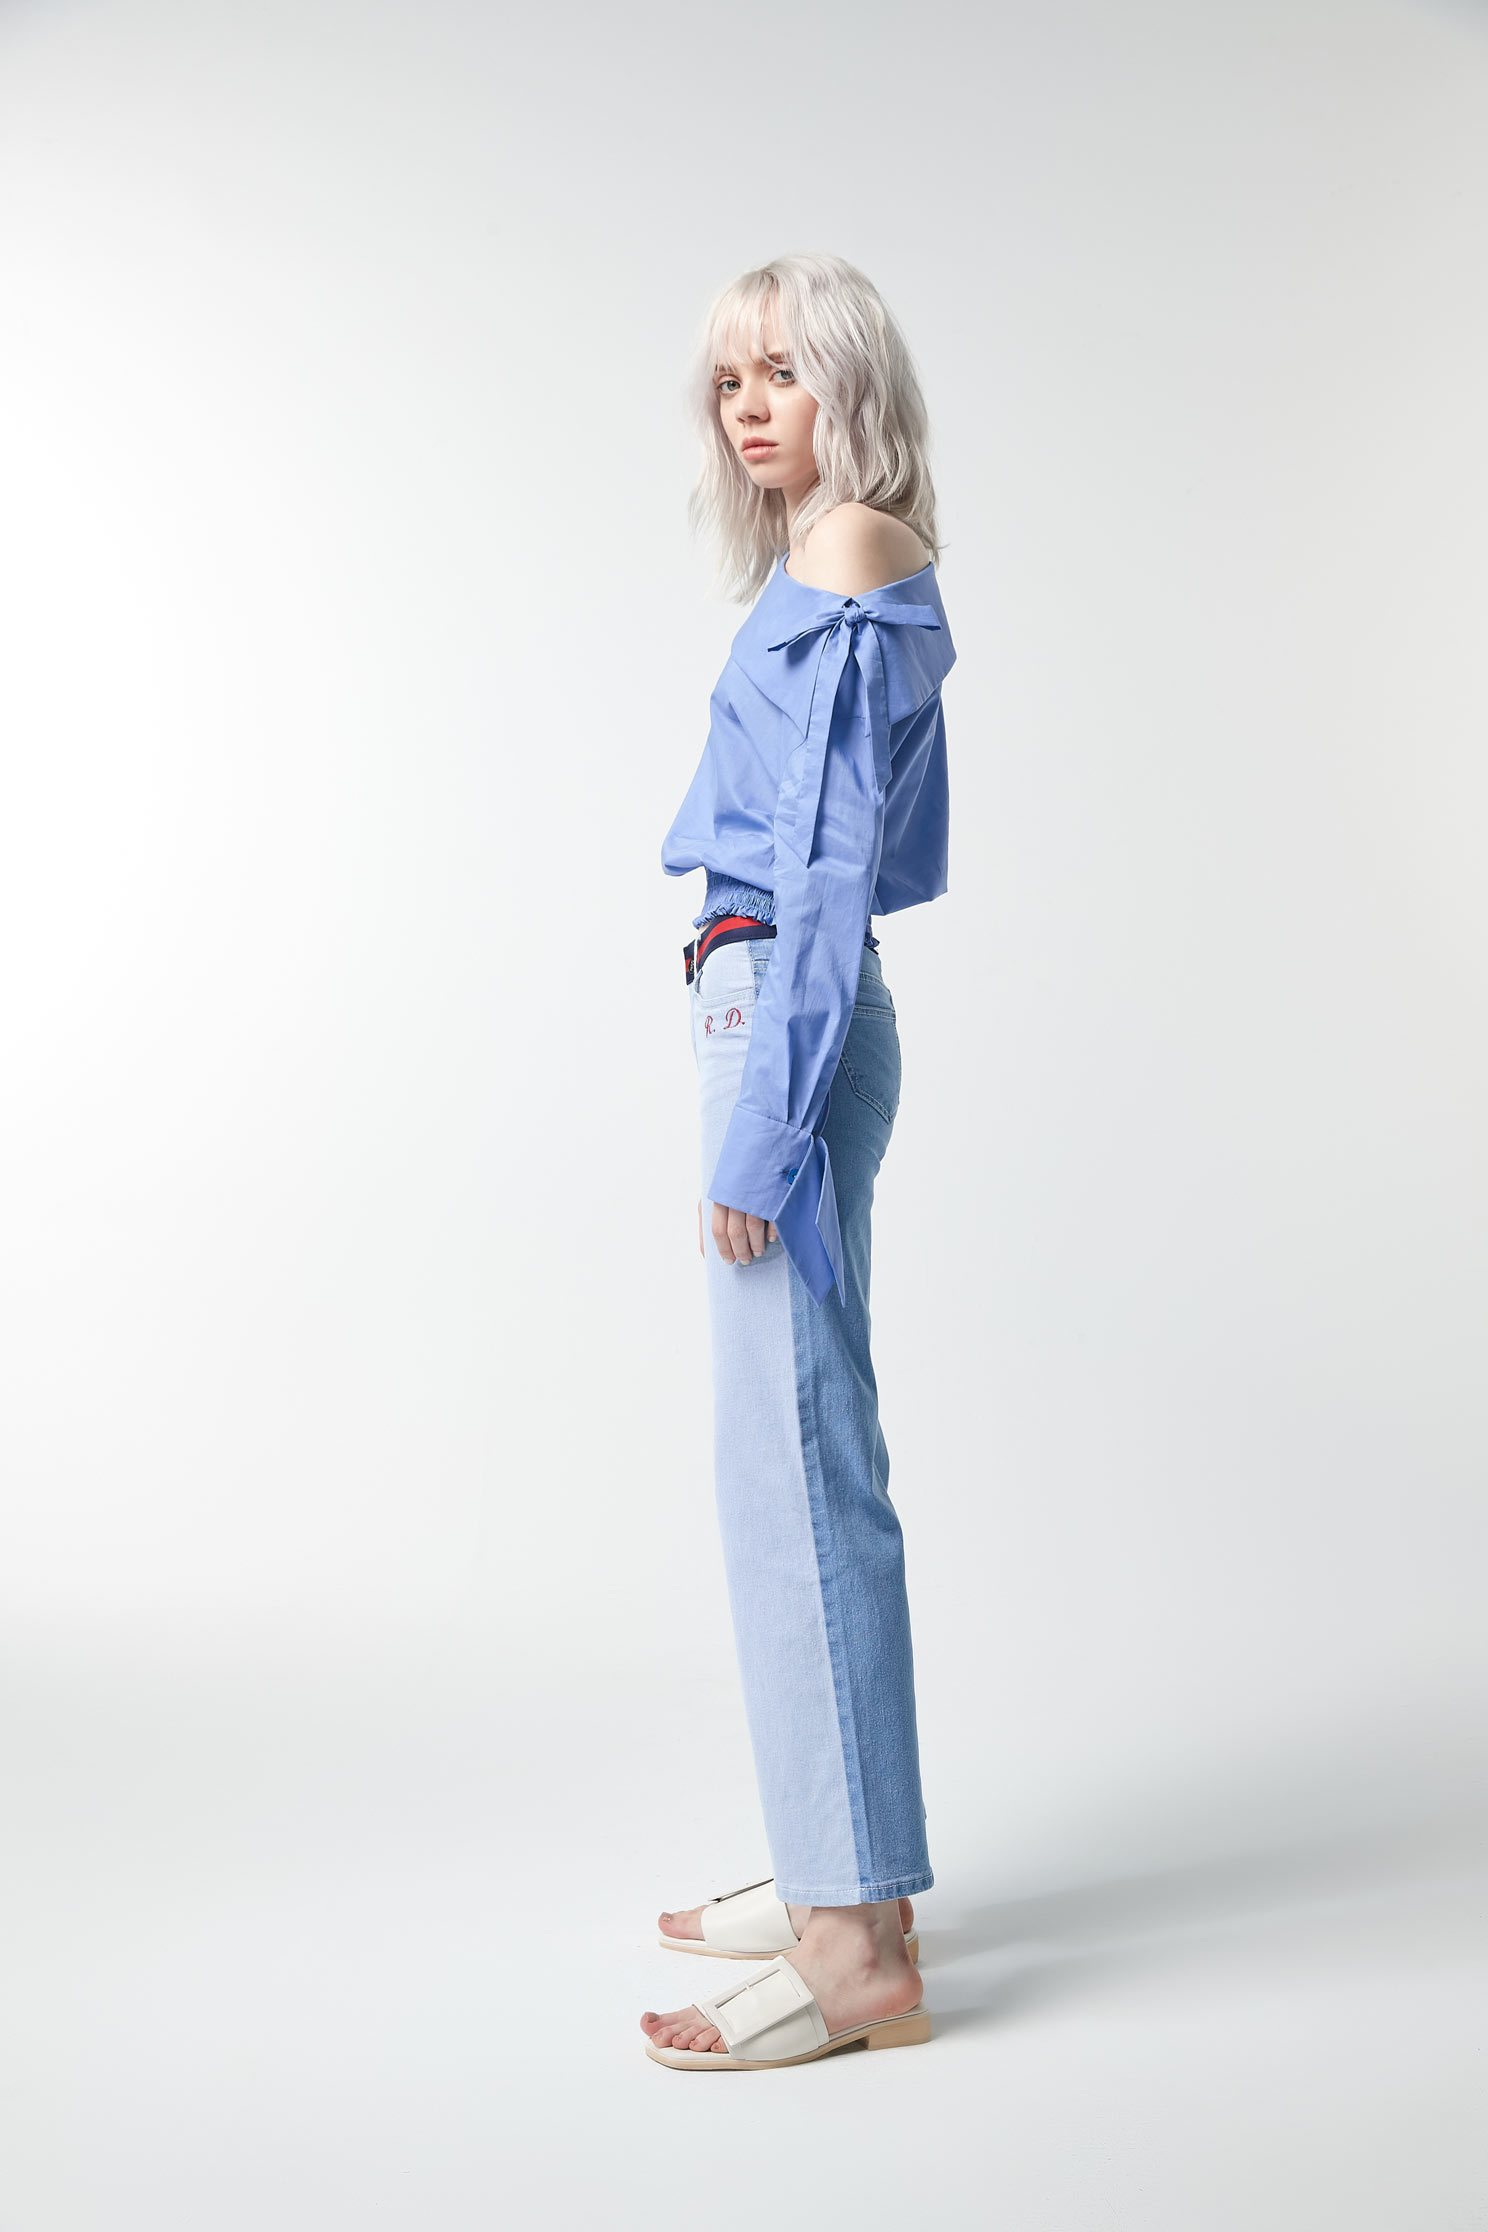 Two-color denim wide pants,tanning,embroidery,culottespants,cowboy,jeans,embroidered,pants